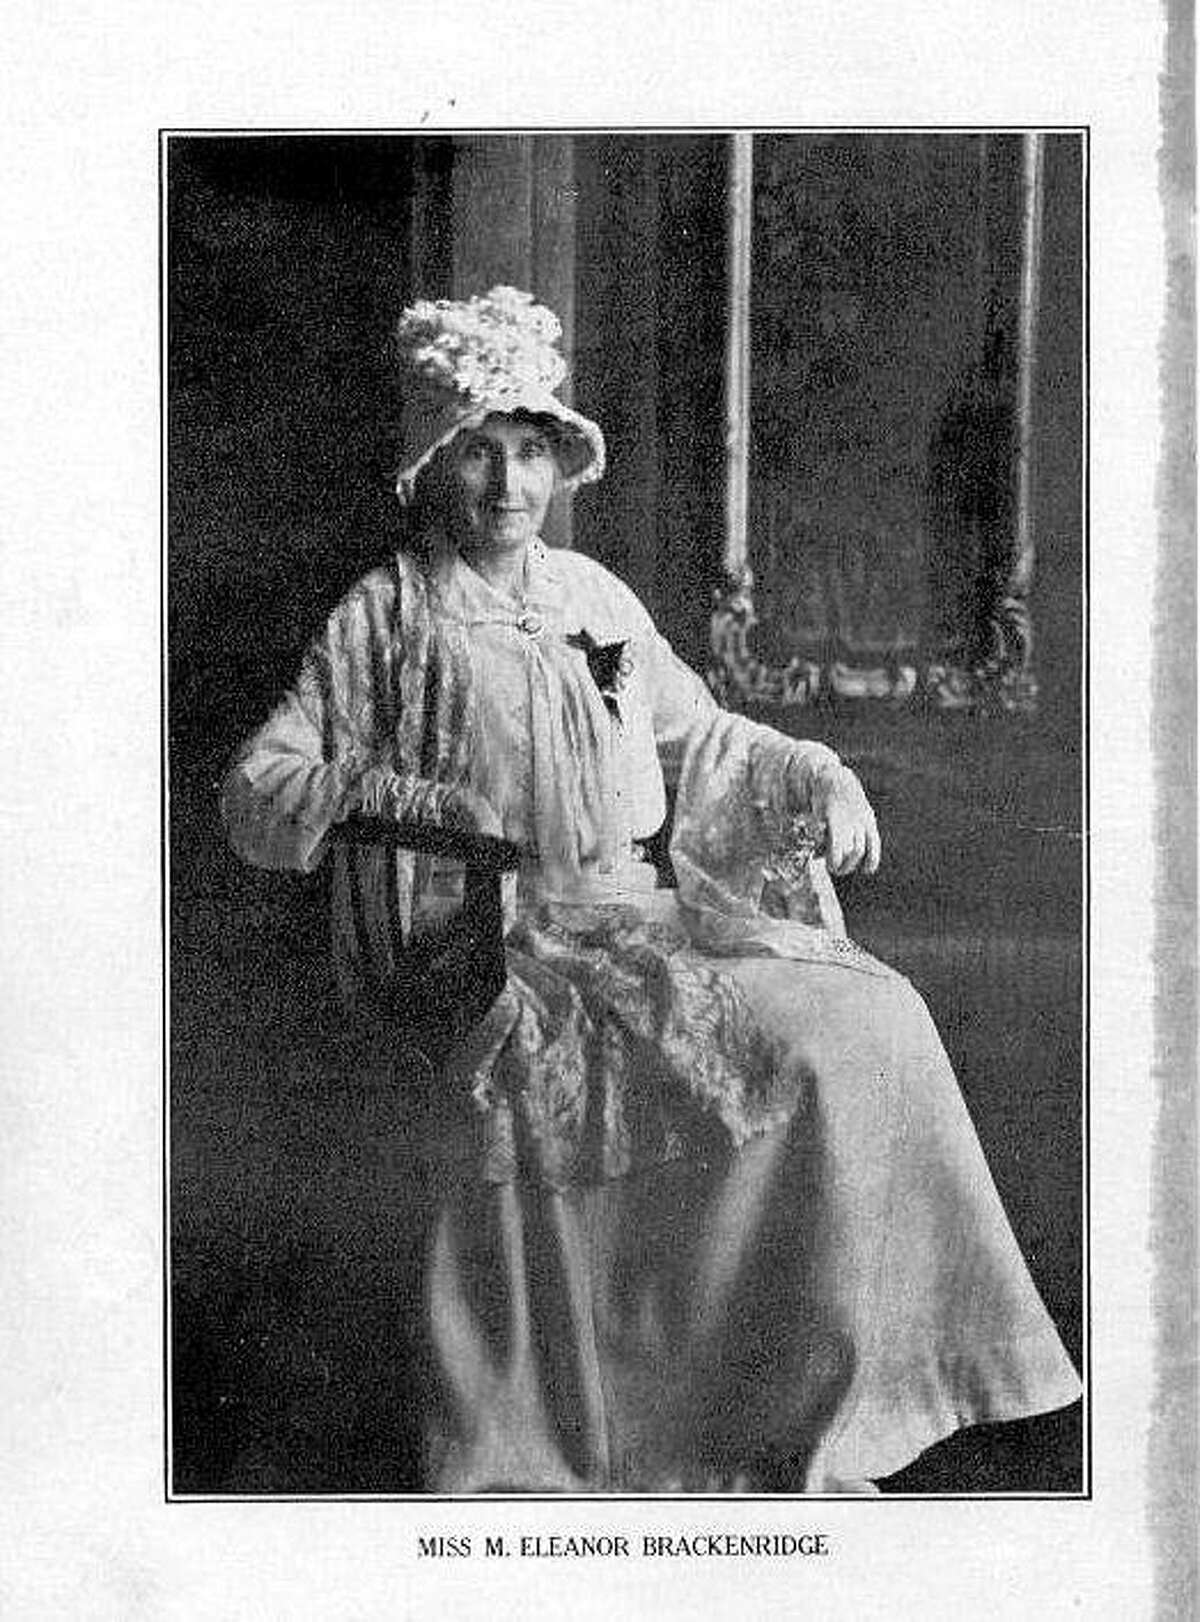 Eleanor Brackenridge fought for women's rights and promoted education.